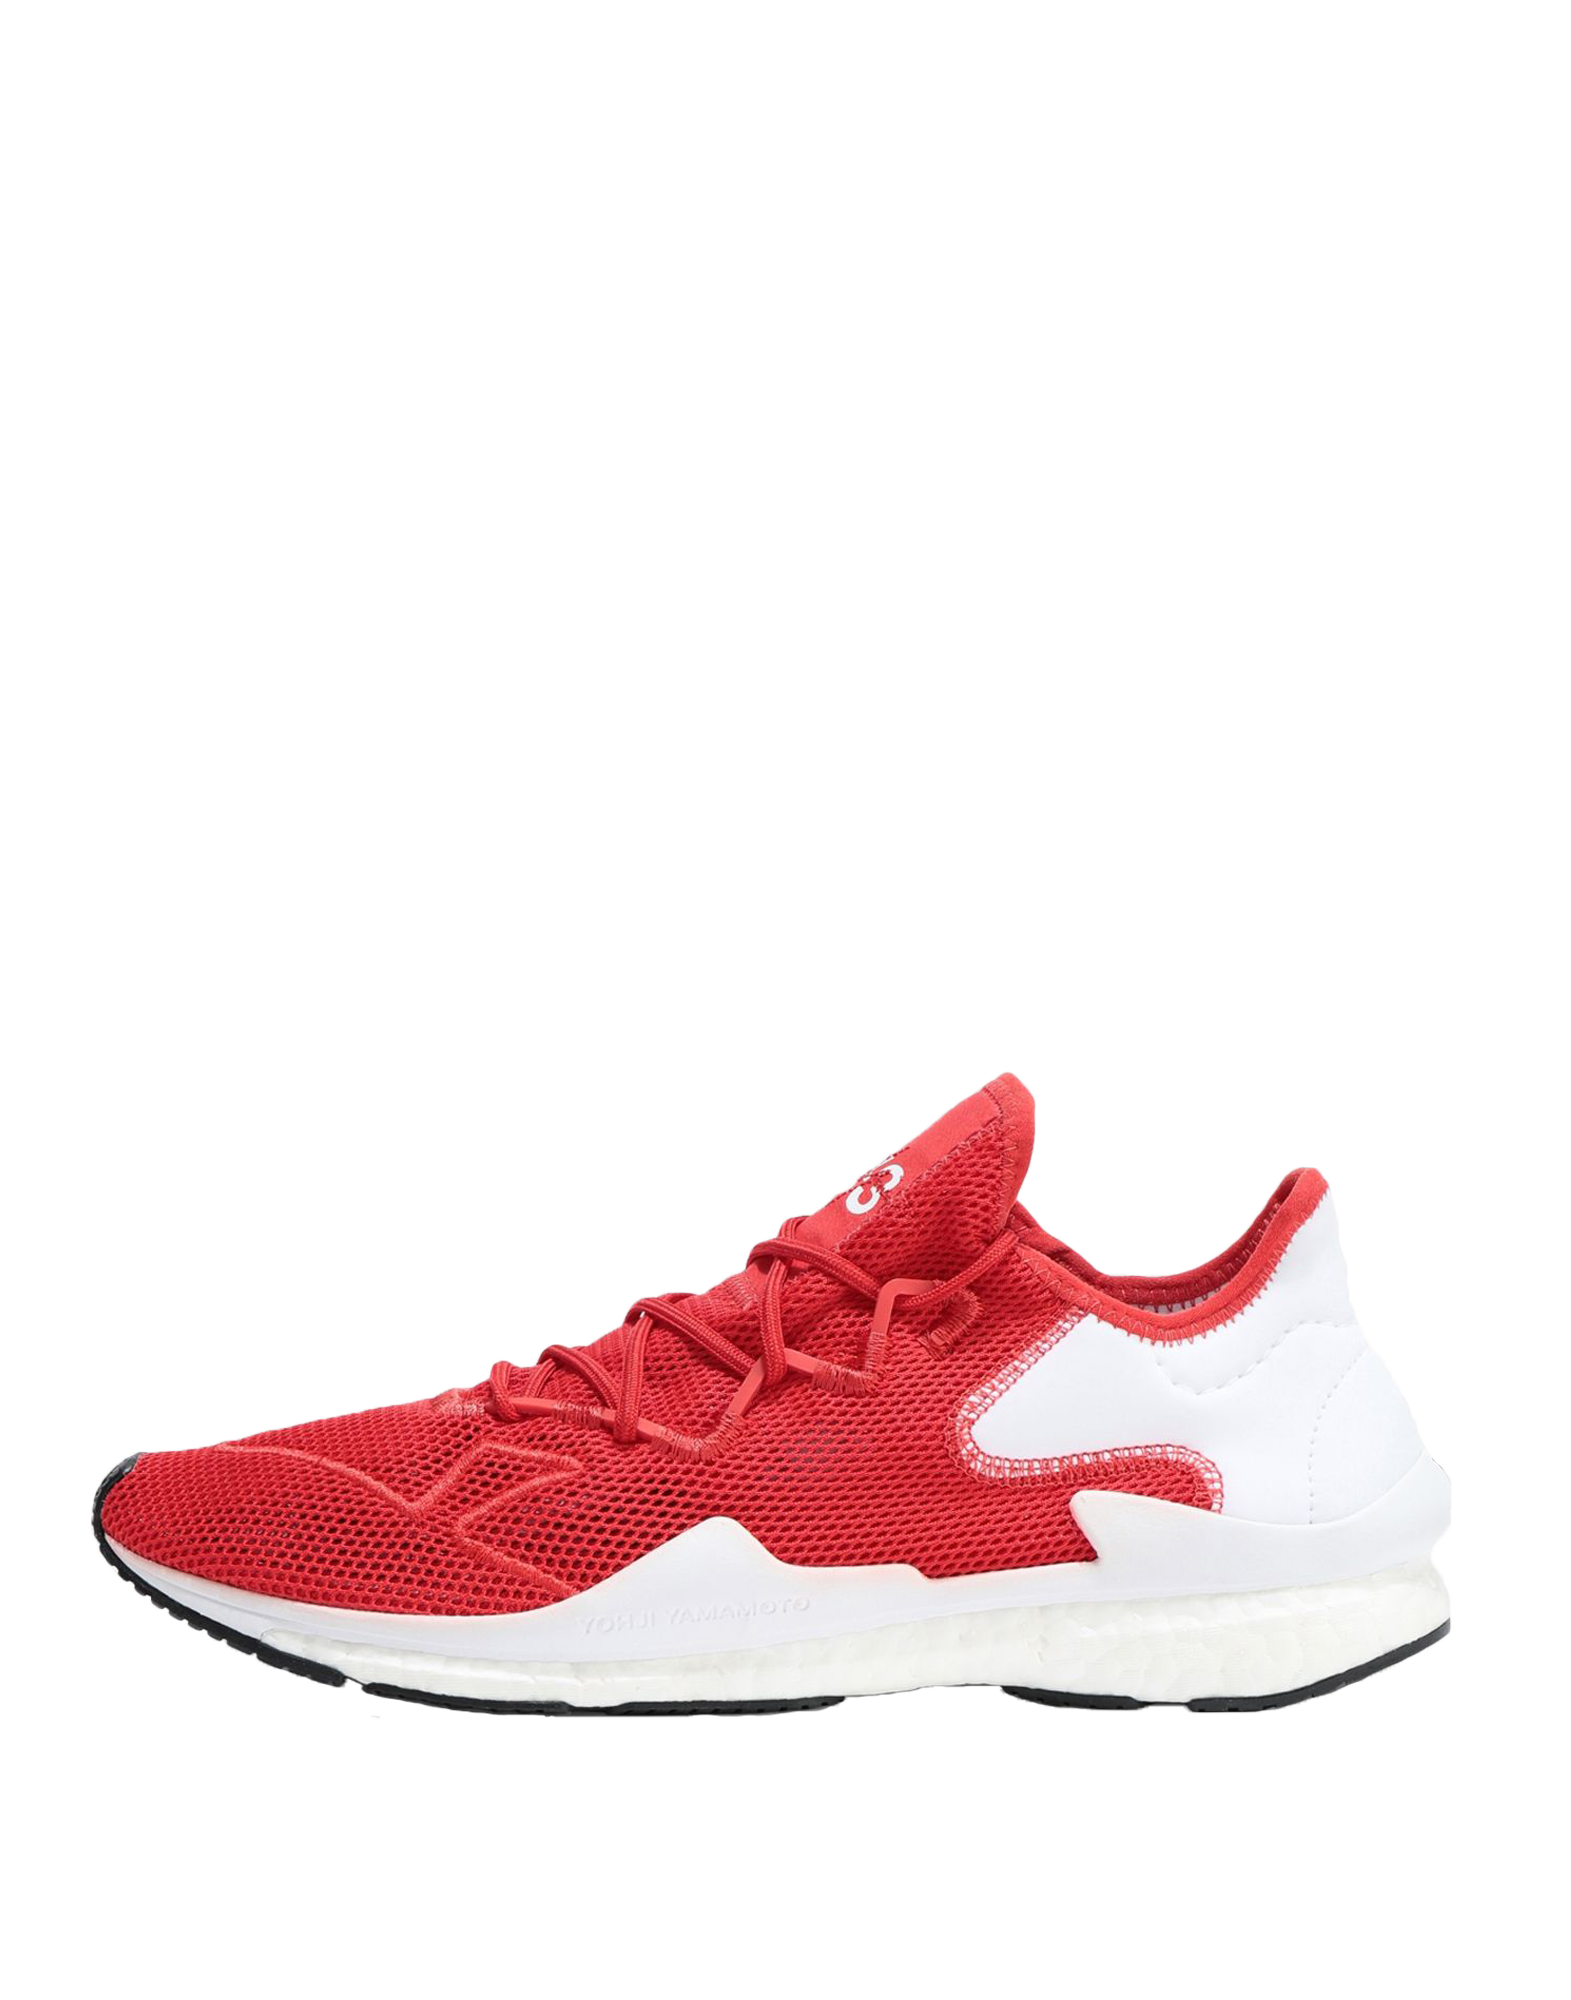 Y-3 ADIZERO RUNNER RED/FTW WHITE G26846